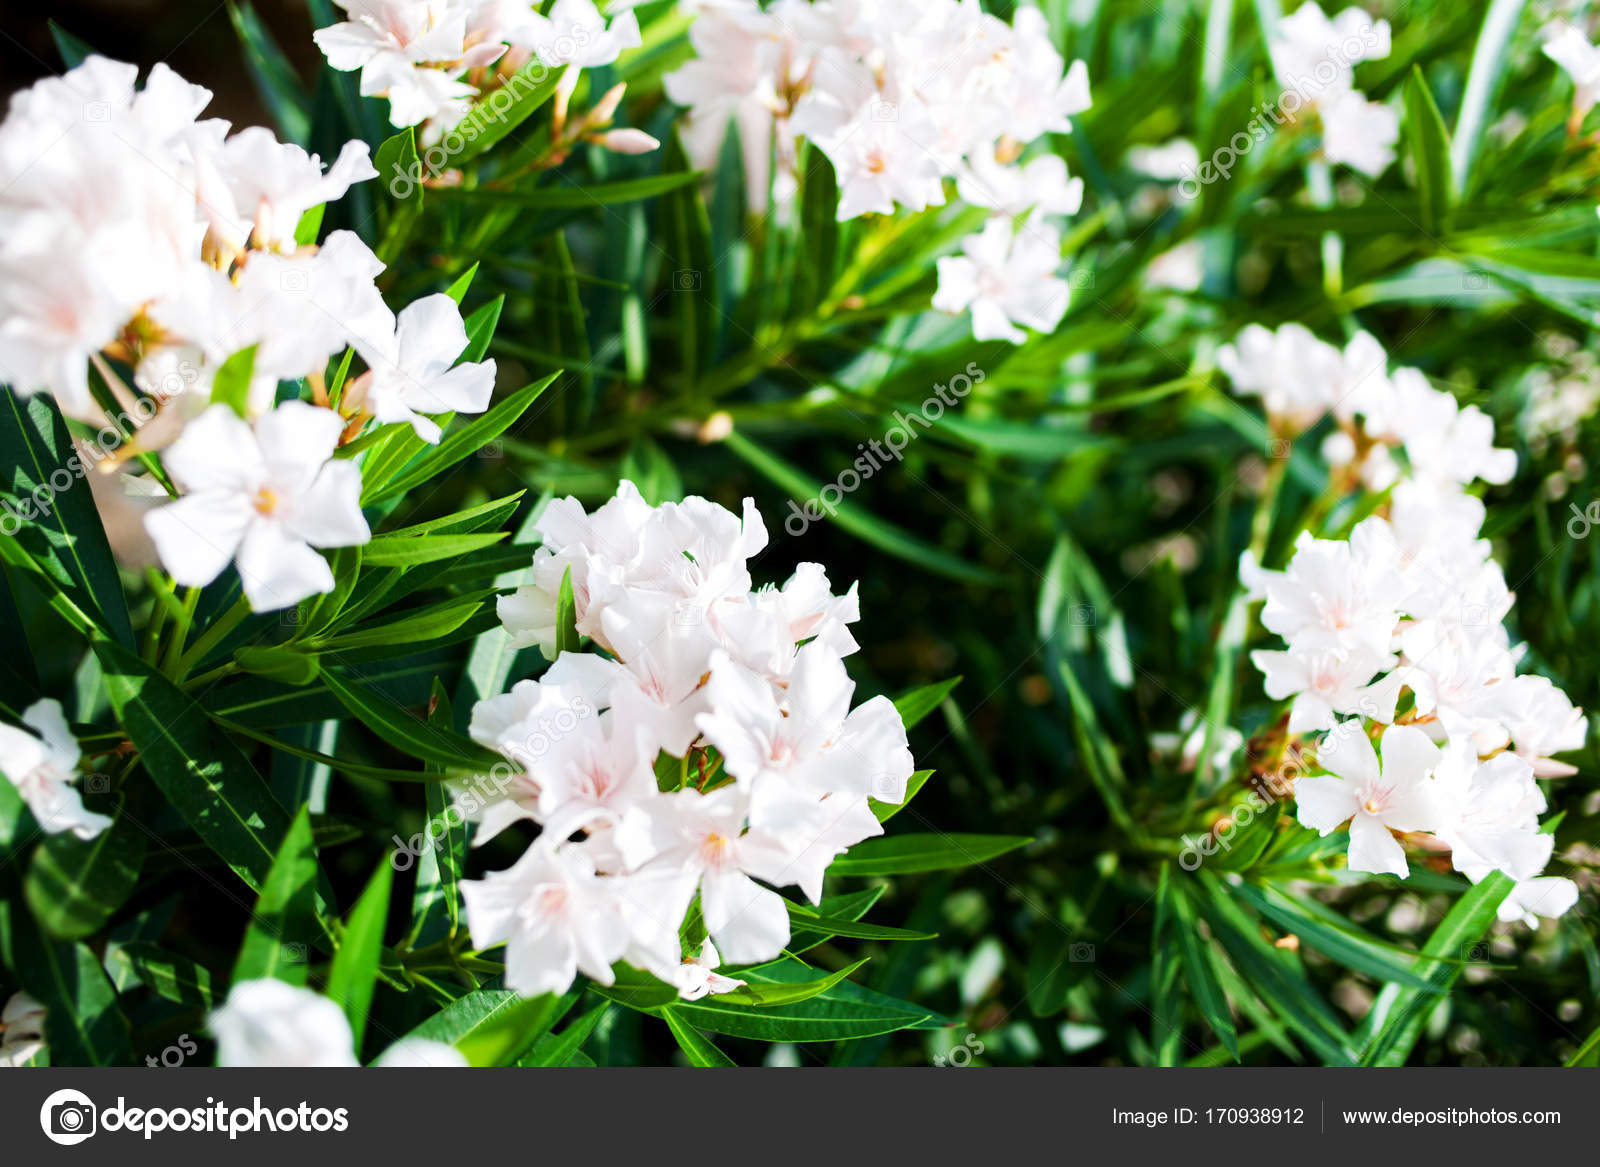 Beautiful Grate White Flowers Green Leaves Outdoor Bunch Flowers